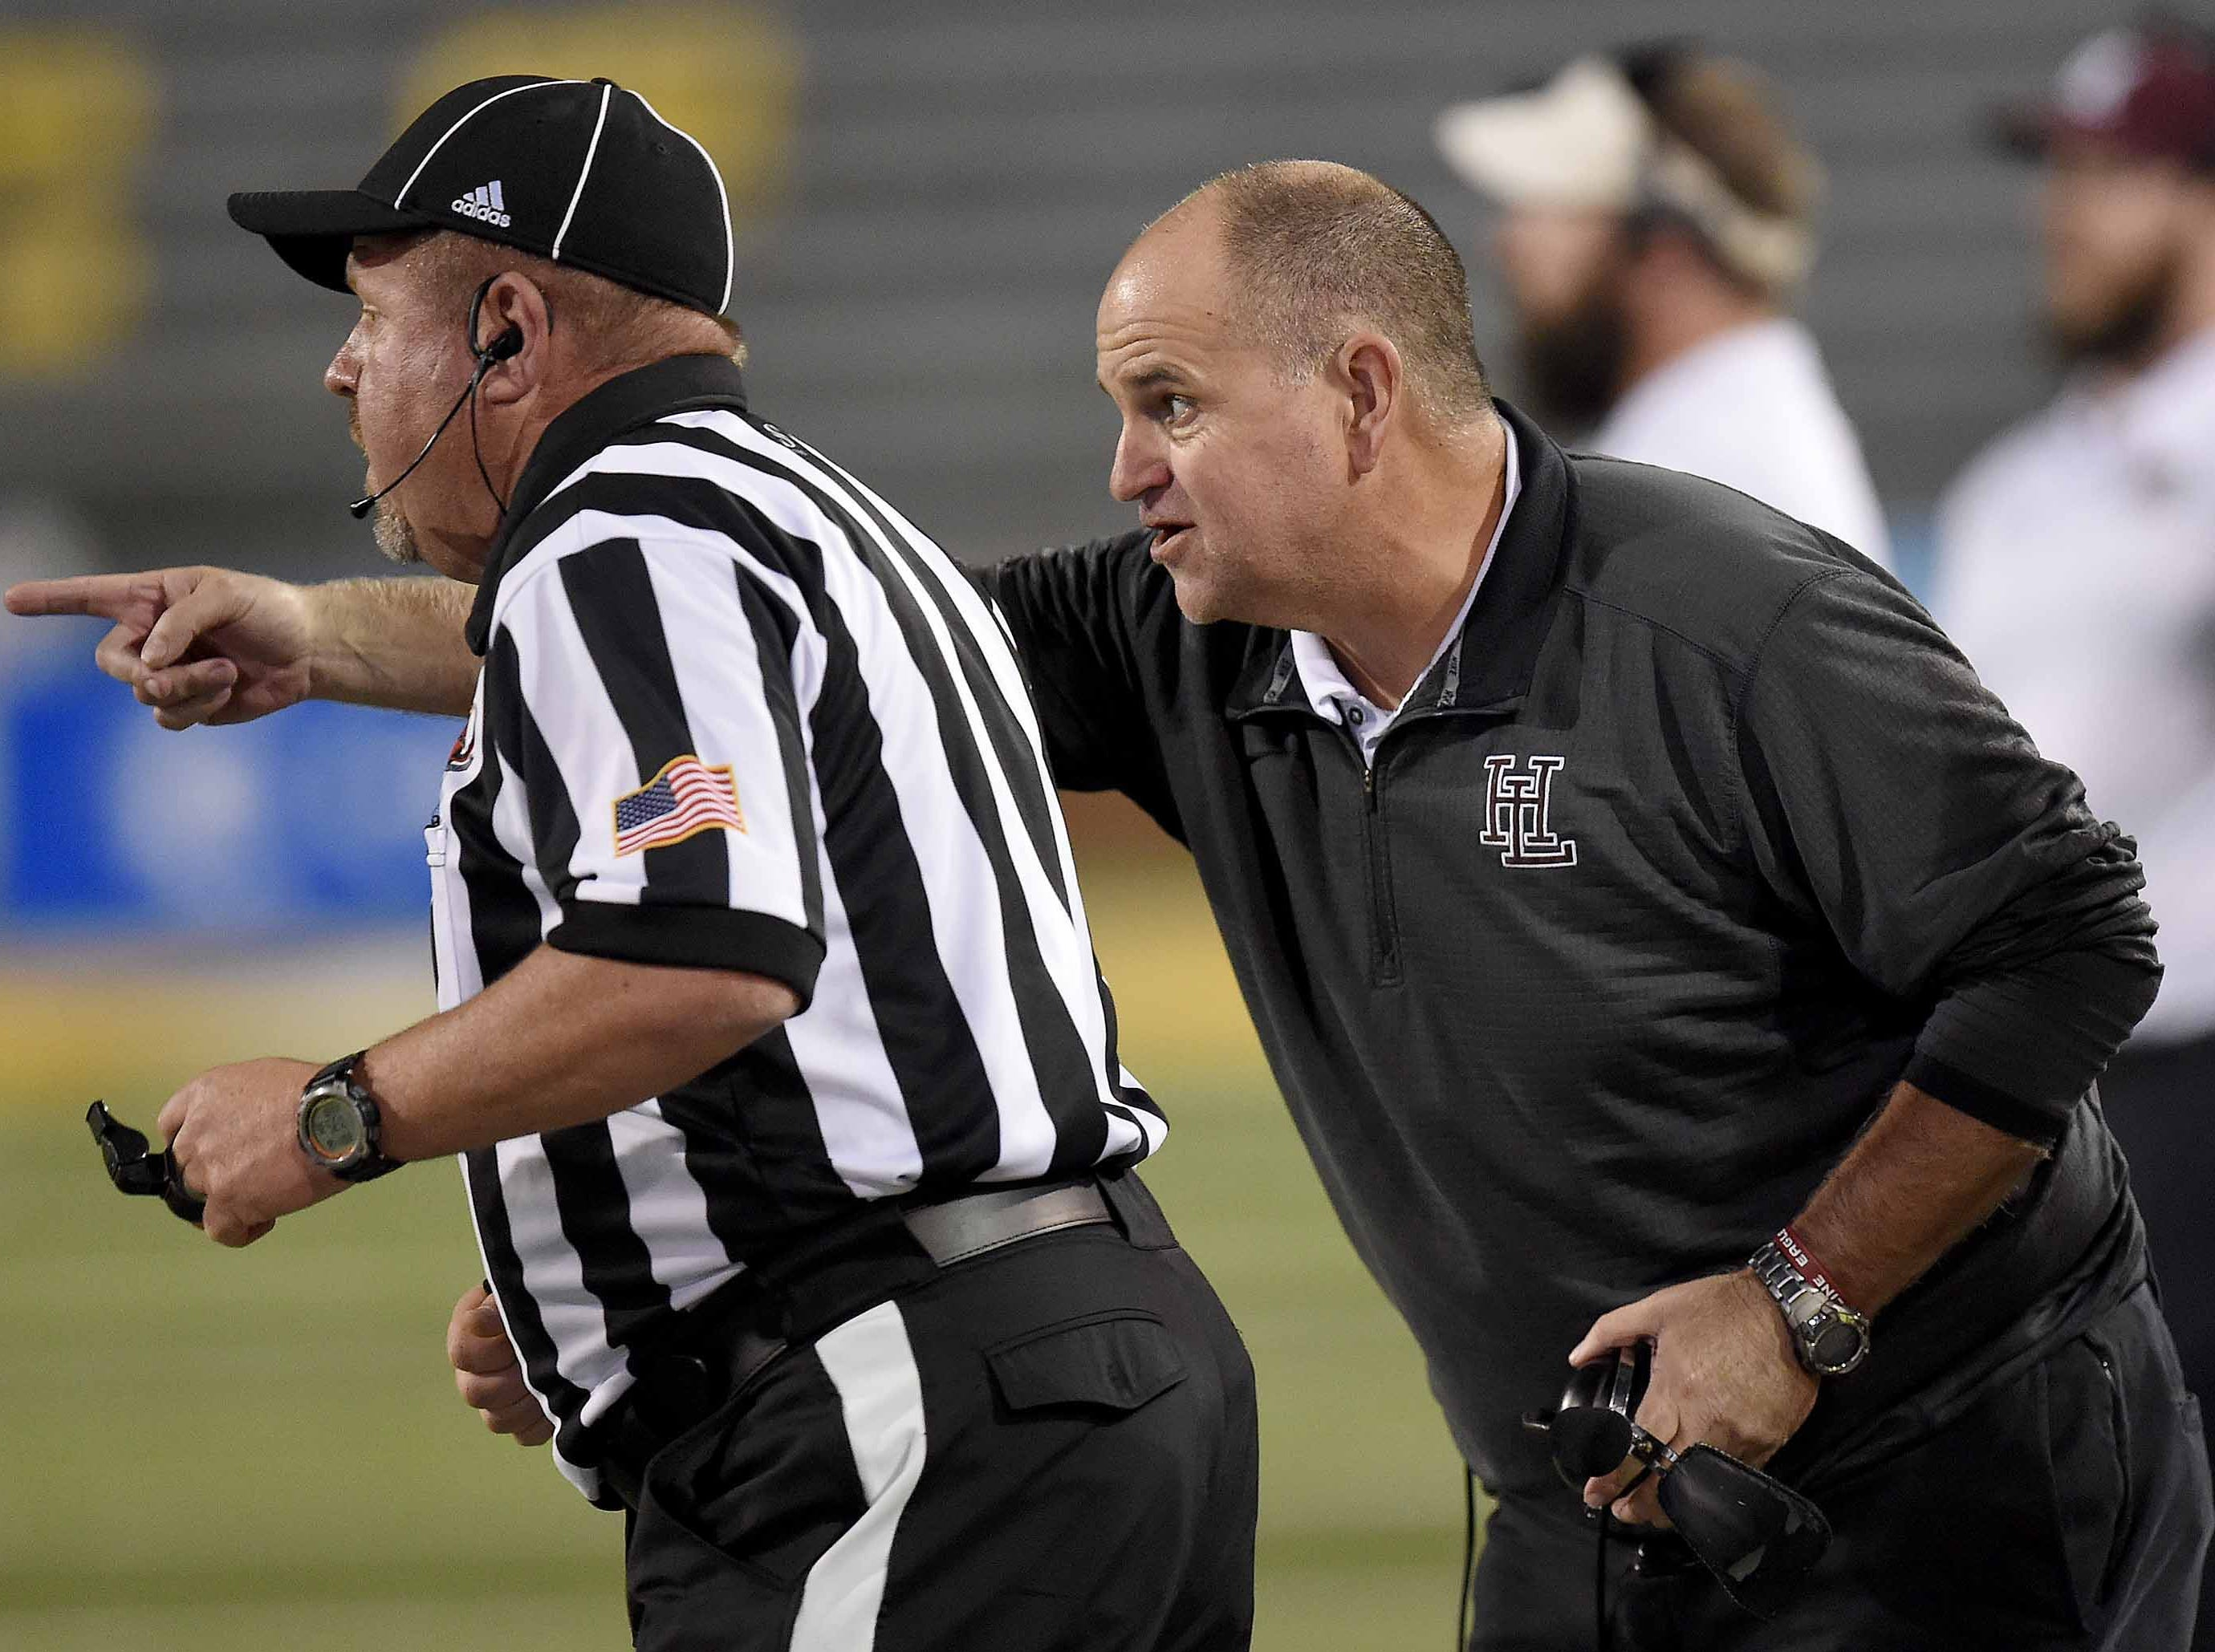 Horn Lake head coach Brad Boyette lobbies an official on Friday, November 20, 2018, in the MHSAA BlueCross BlueShield Gridiron Classic High School Football Championships in M.M. Roberts Stadium on the University of Southern Mississippi campus in Hattiesburg, Miss.